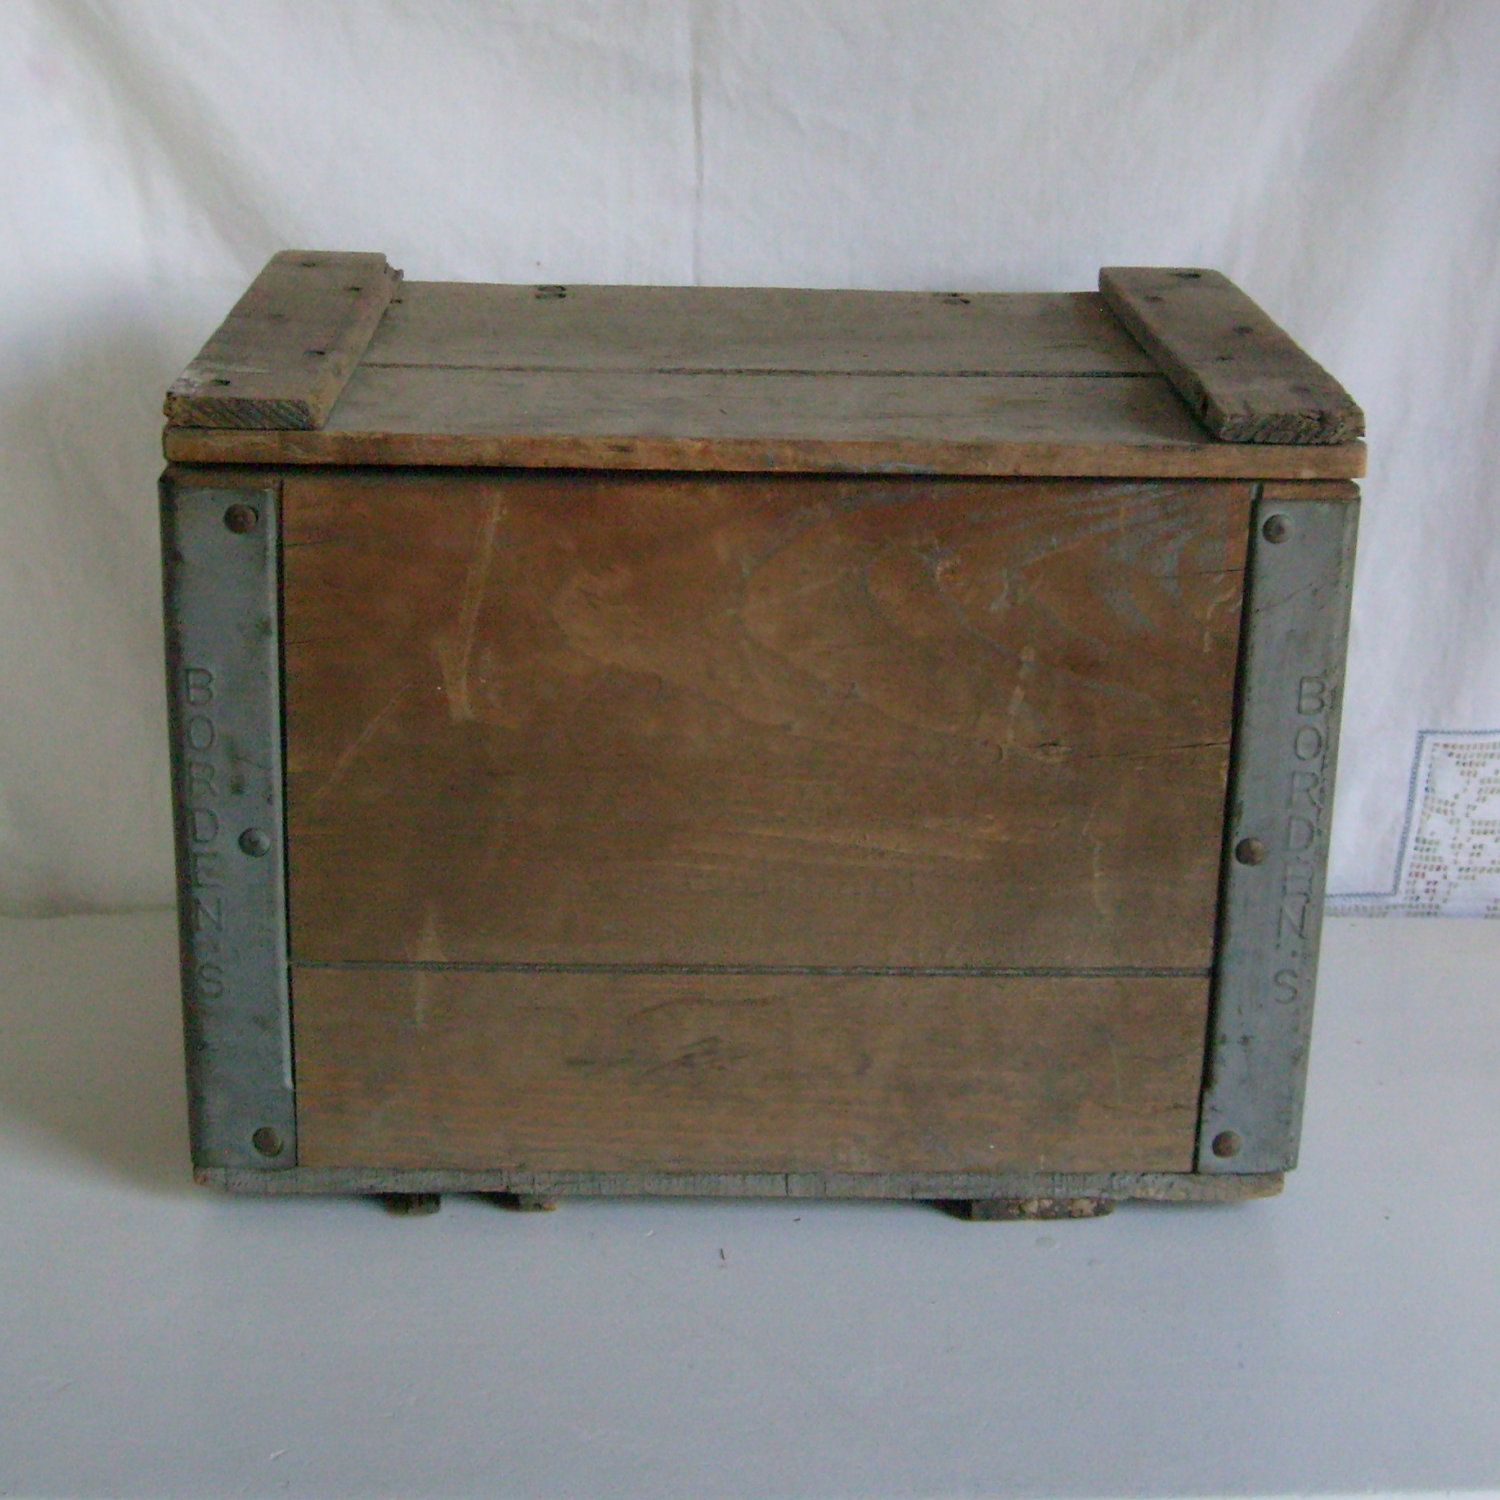 Vintage Milk Box Wood And Metal Bordens Dairy By The Cesco Container Co With Lid Milk Box Wood And Metal Milk Crates